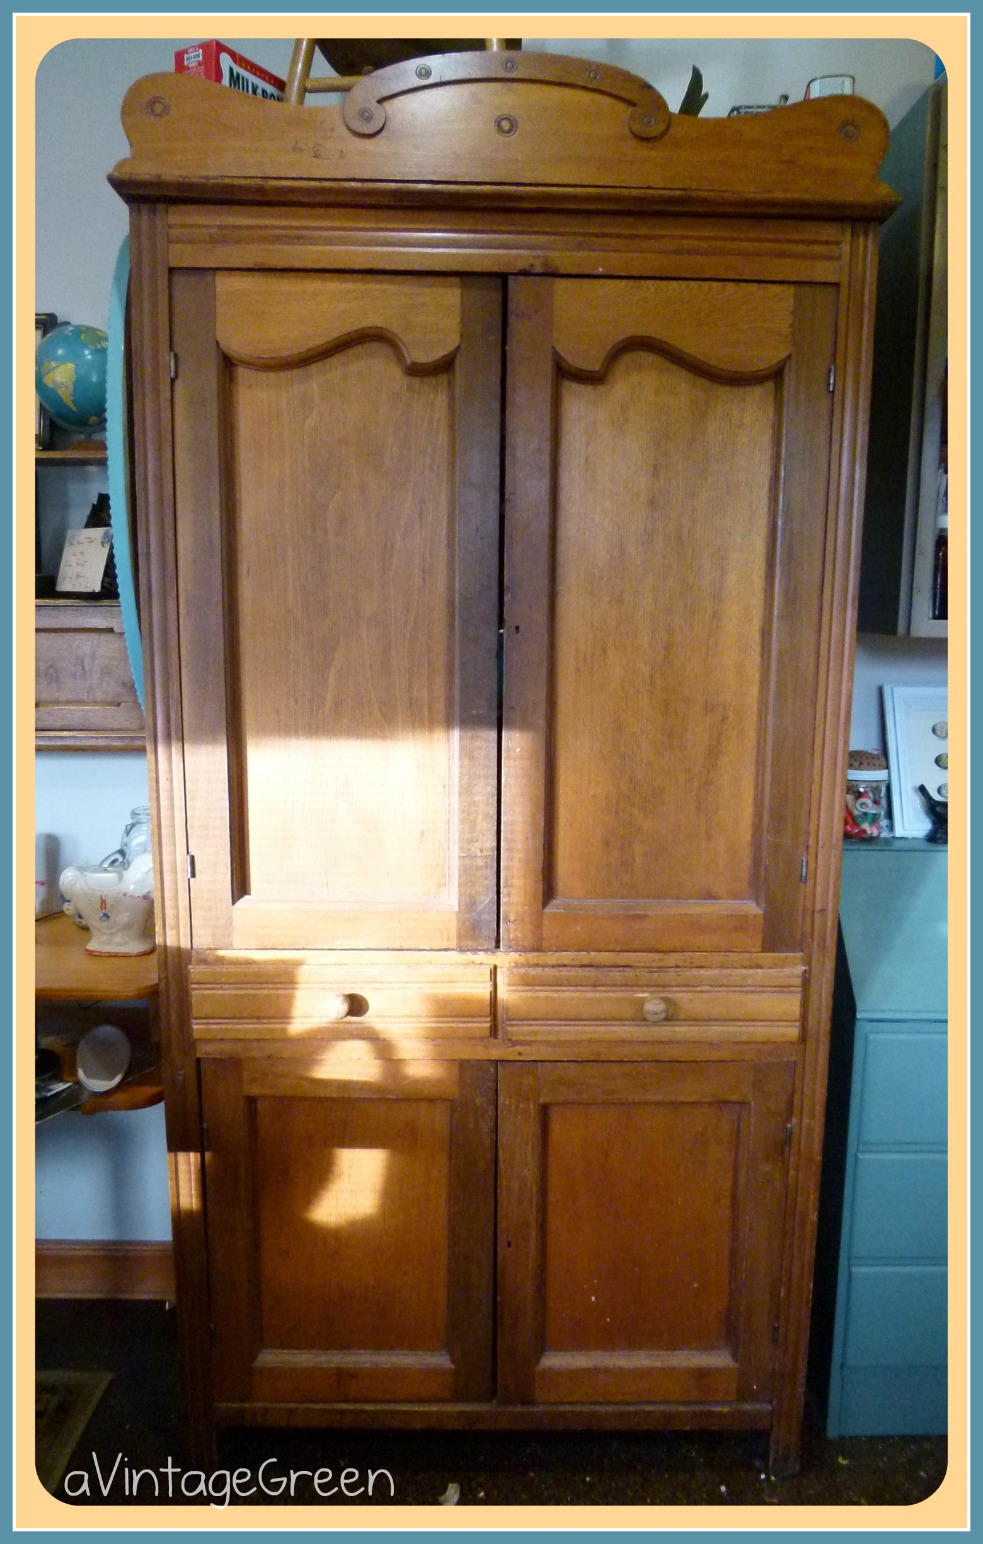 ... original hardware (great hinges and hooks inside to close doors, has a  pediment. Was found covered in red barn paint (Pie Safe picture also a  recap). - A Vintage Green: Antique 140 Year Old Pie Safe Part 2